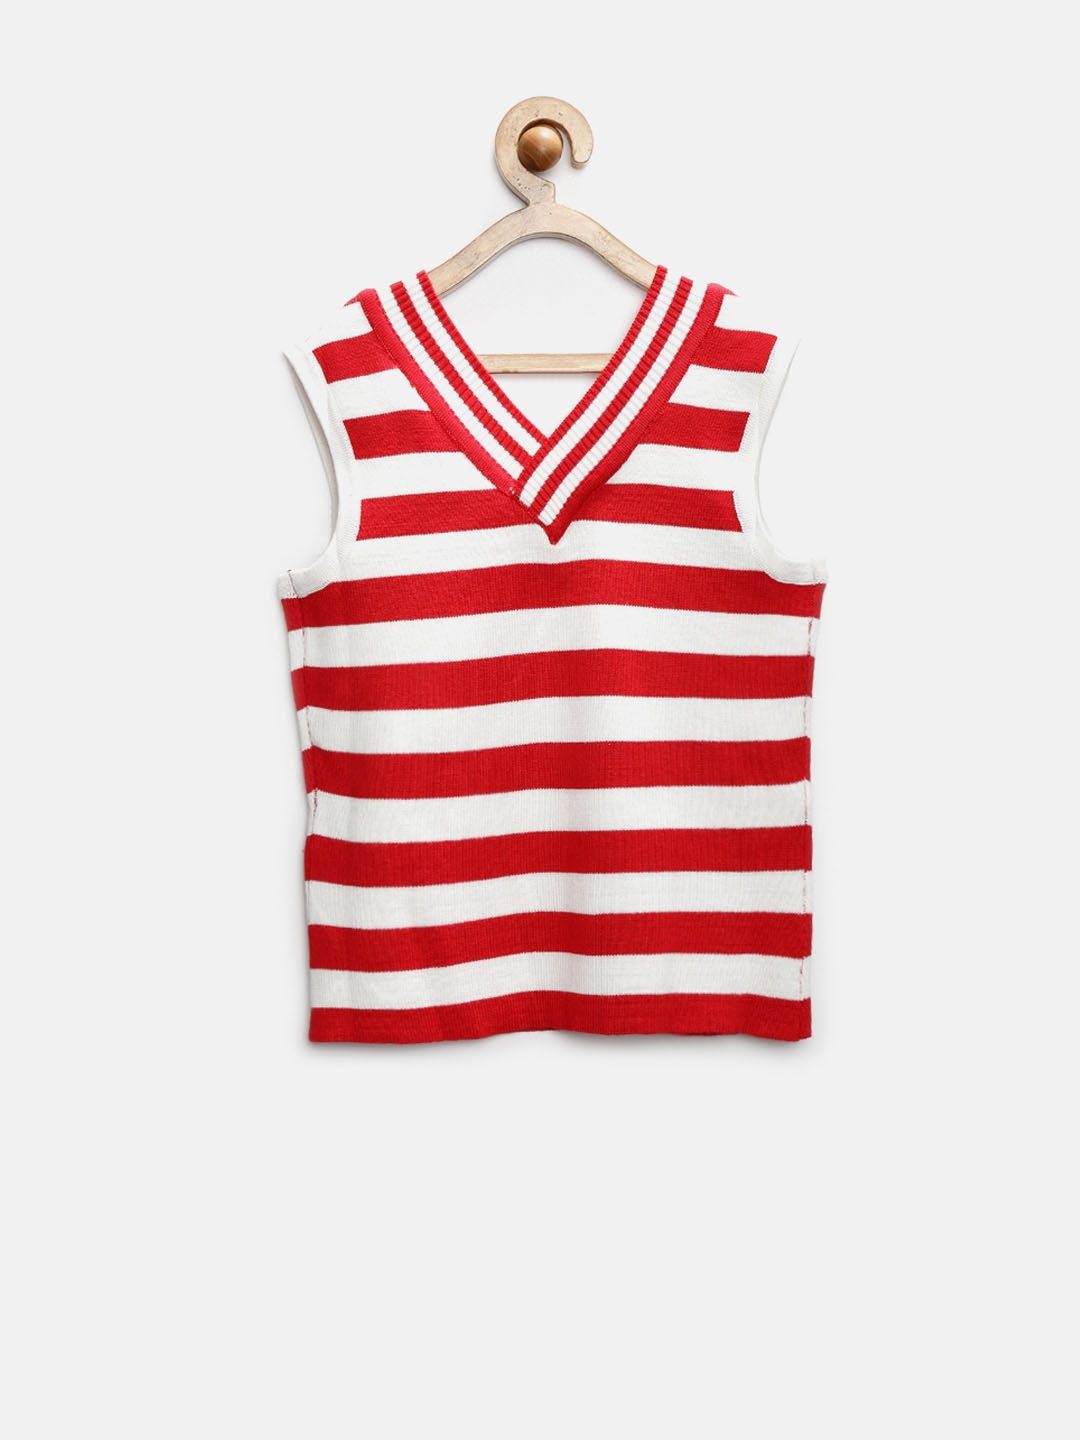 57f52eceec8 Buy Tiny Girl Red   White Striped Top - Tops for Girls 1200296